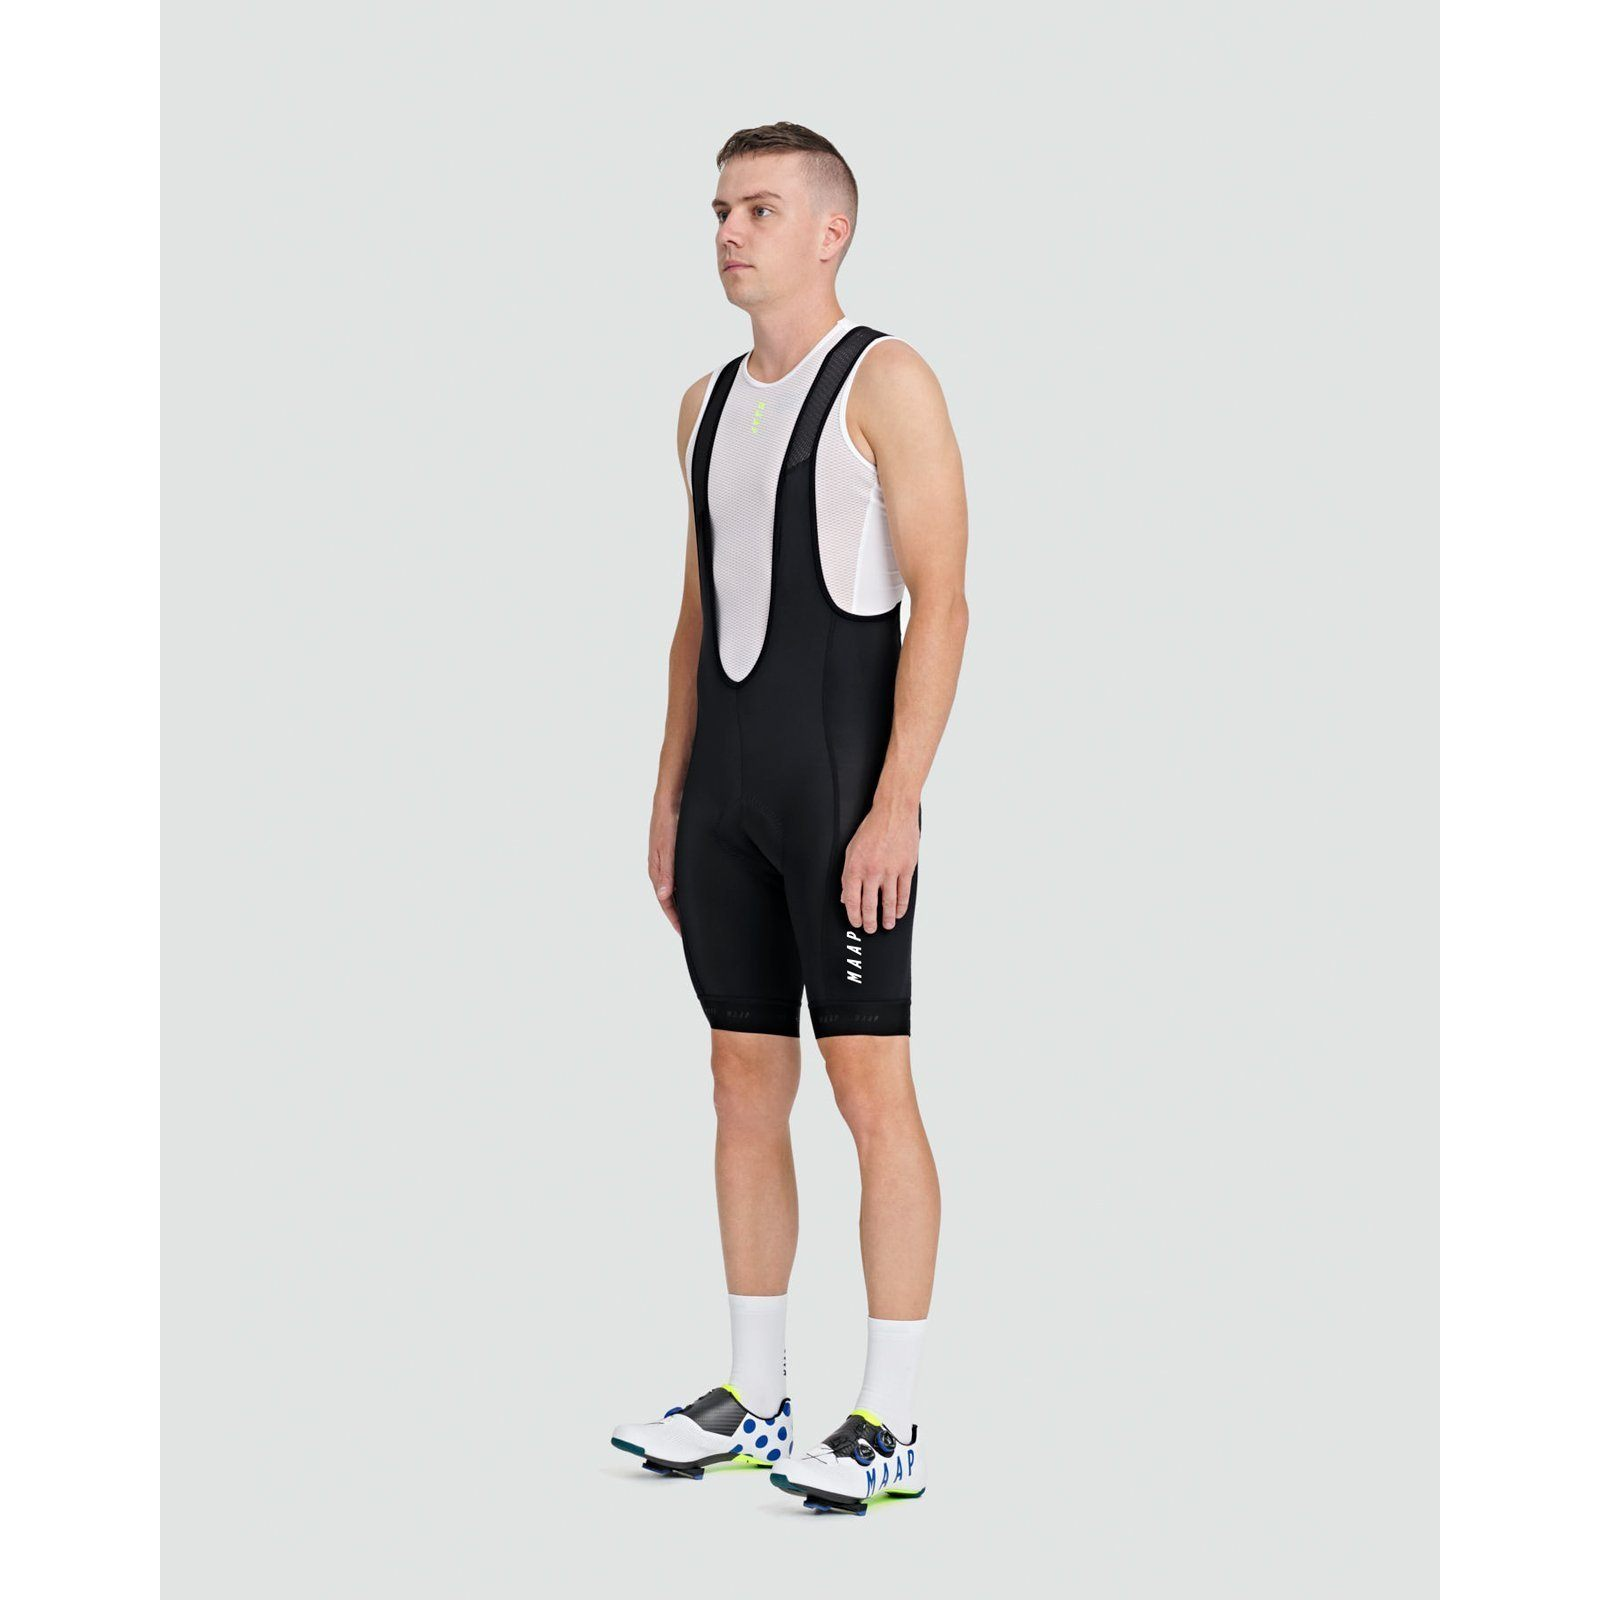 Training Bib Short - Black/White Bib Shorts MAAP